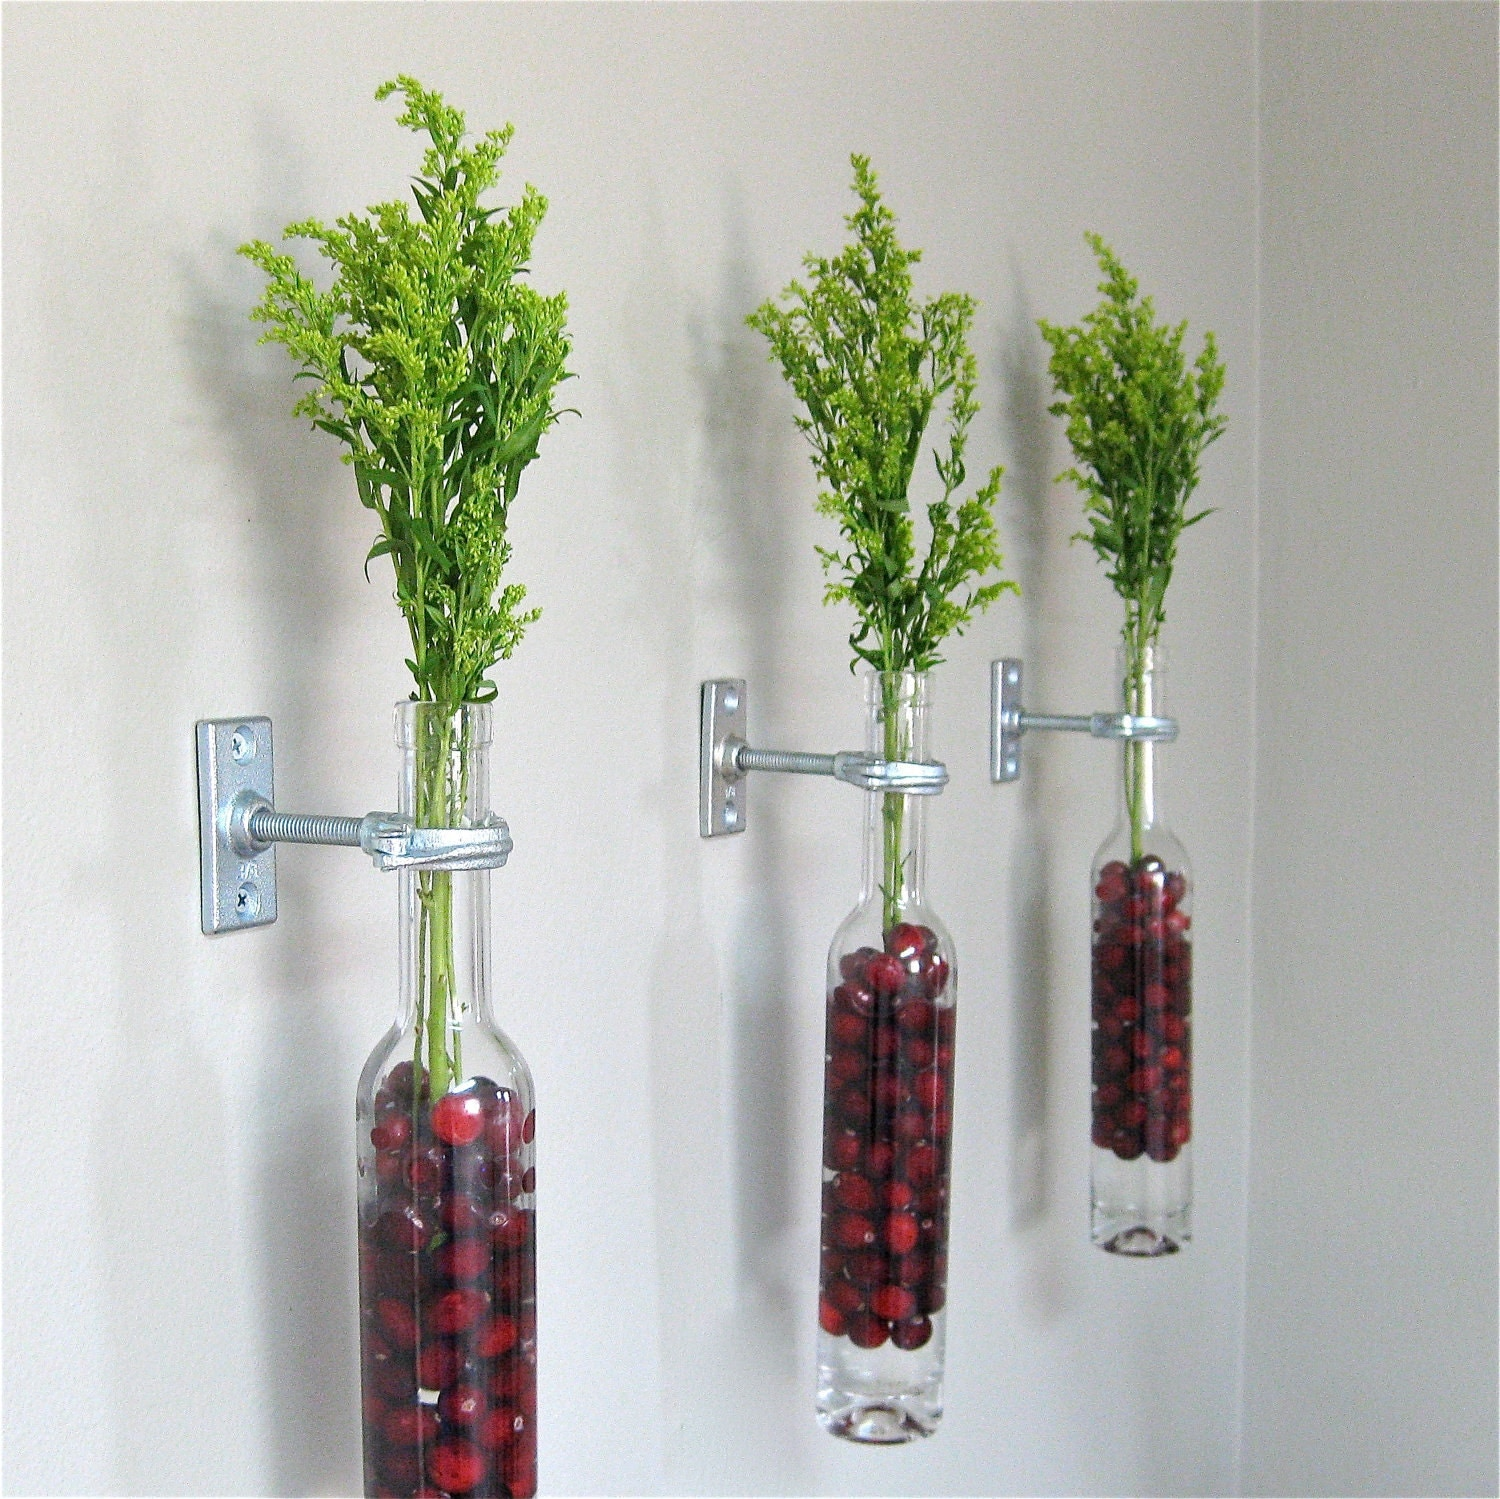 Wall vases for flowers - 2 Wine Bottle Wall Flower Vases Red Cranberries Christmas Wall Decor Christmas Vase Copper Silver Or Iron Hardware Cranberry